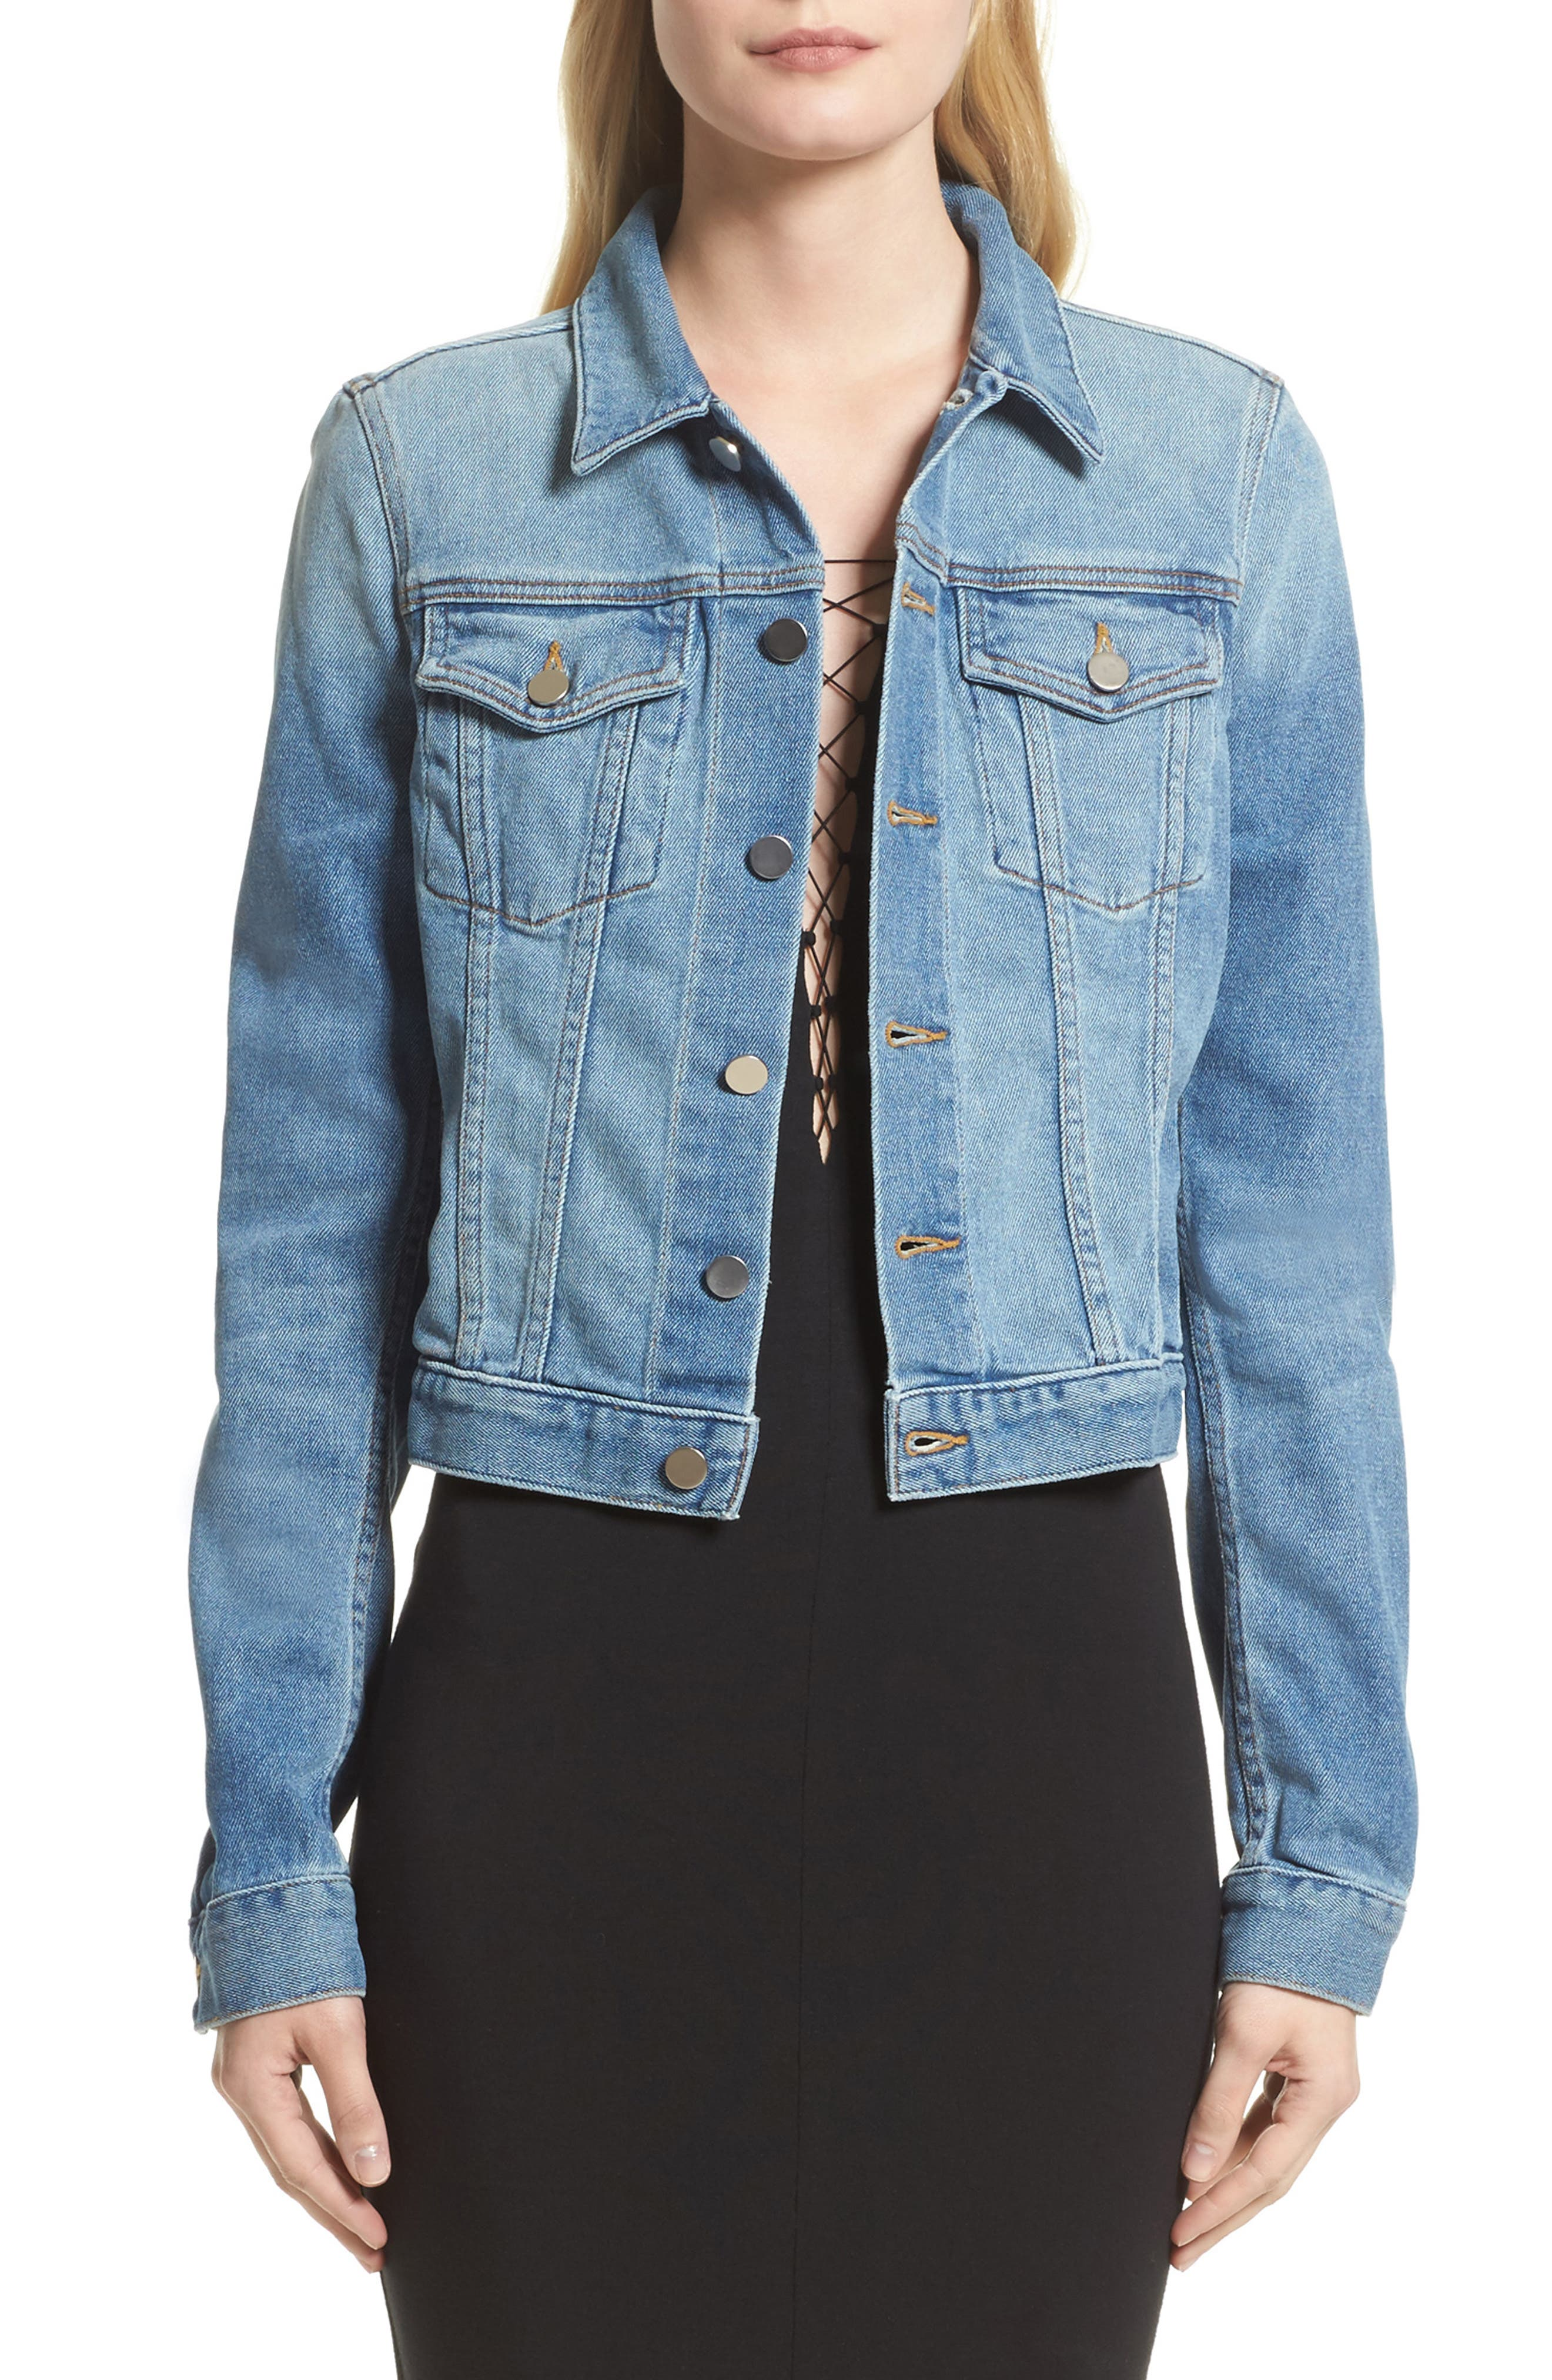 T by Alexander Wang Denim Jacket (Nordstrom Exclusive)